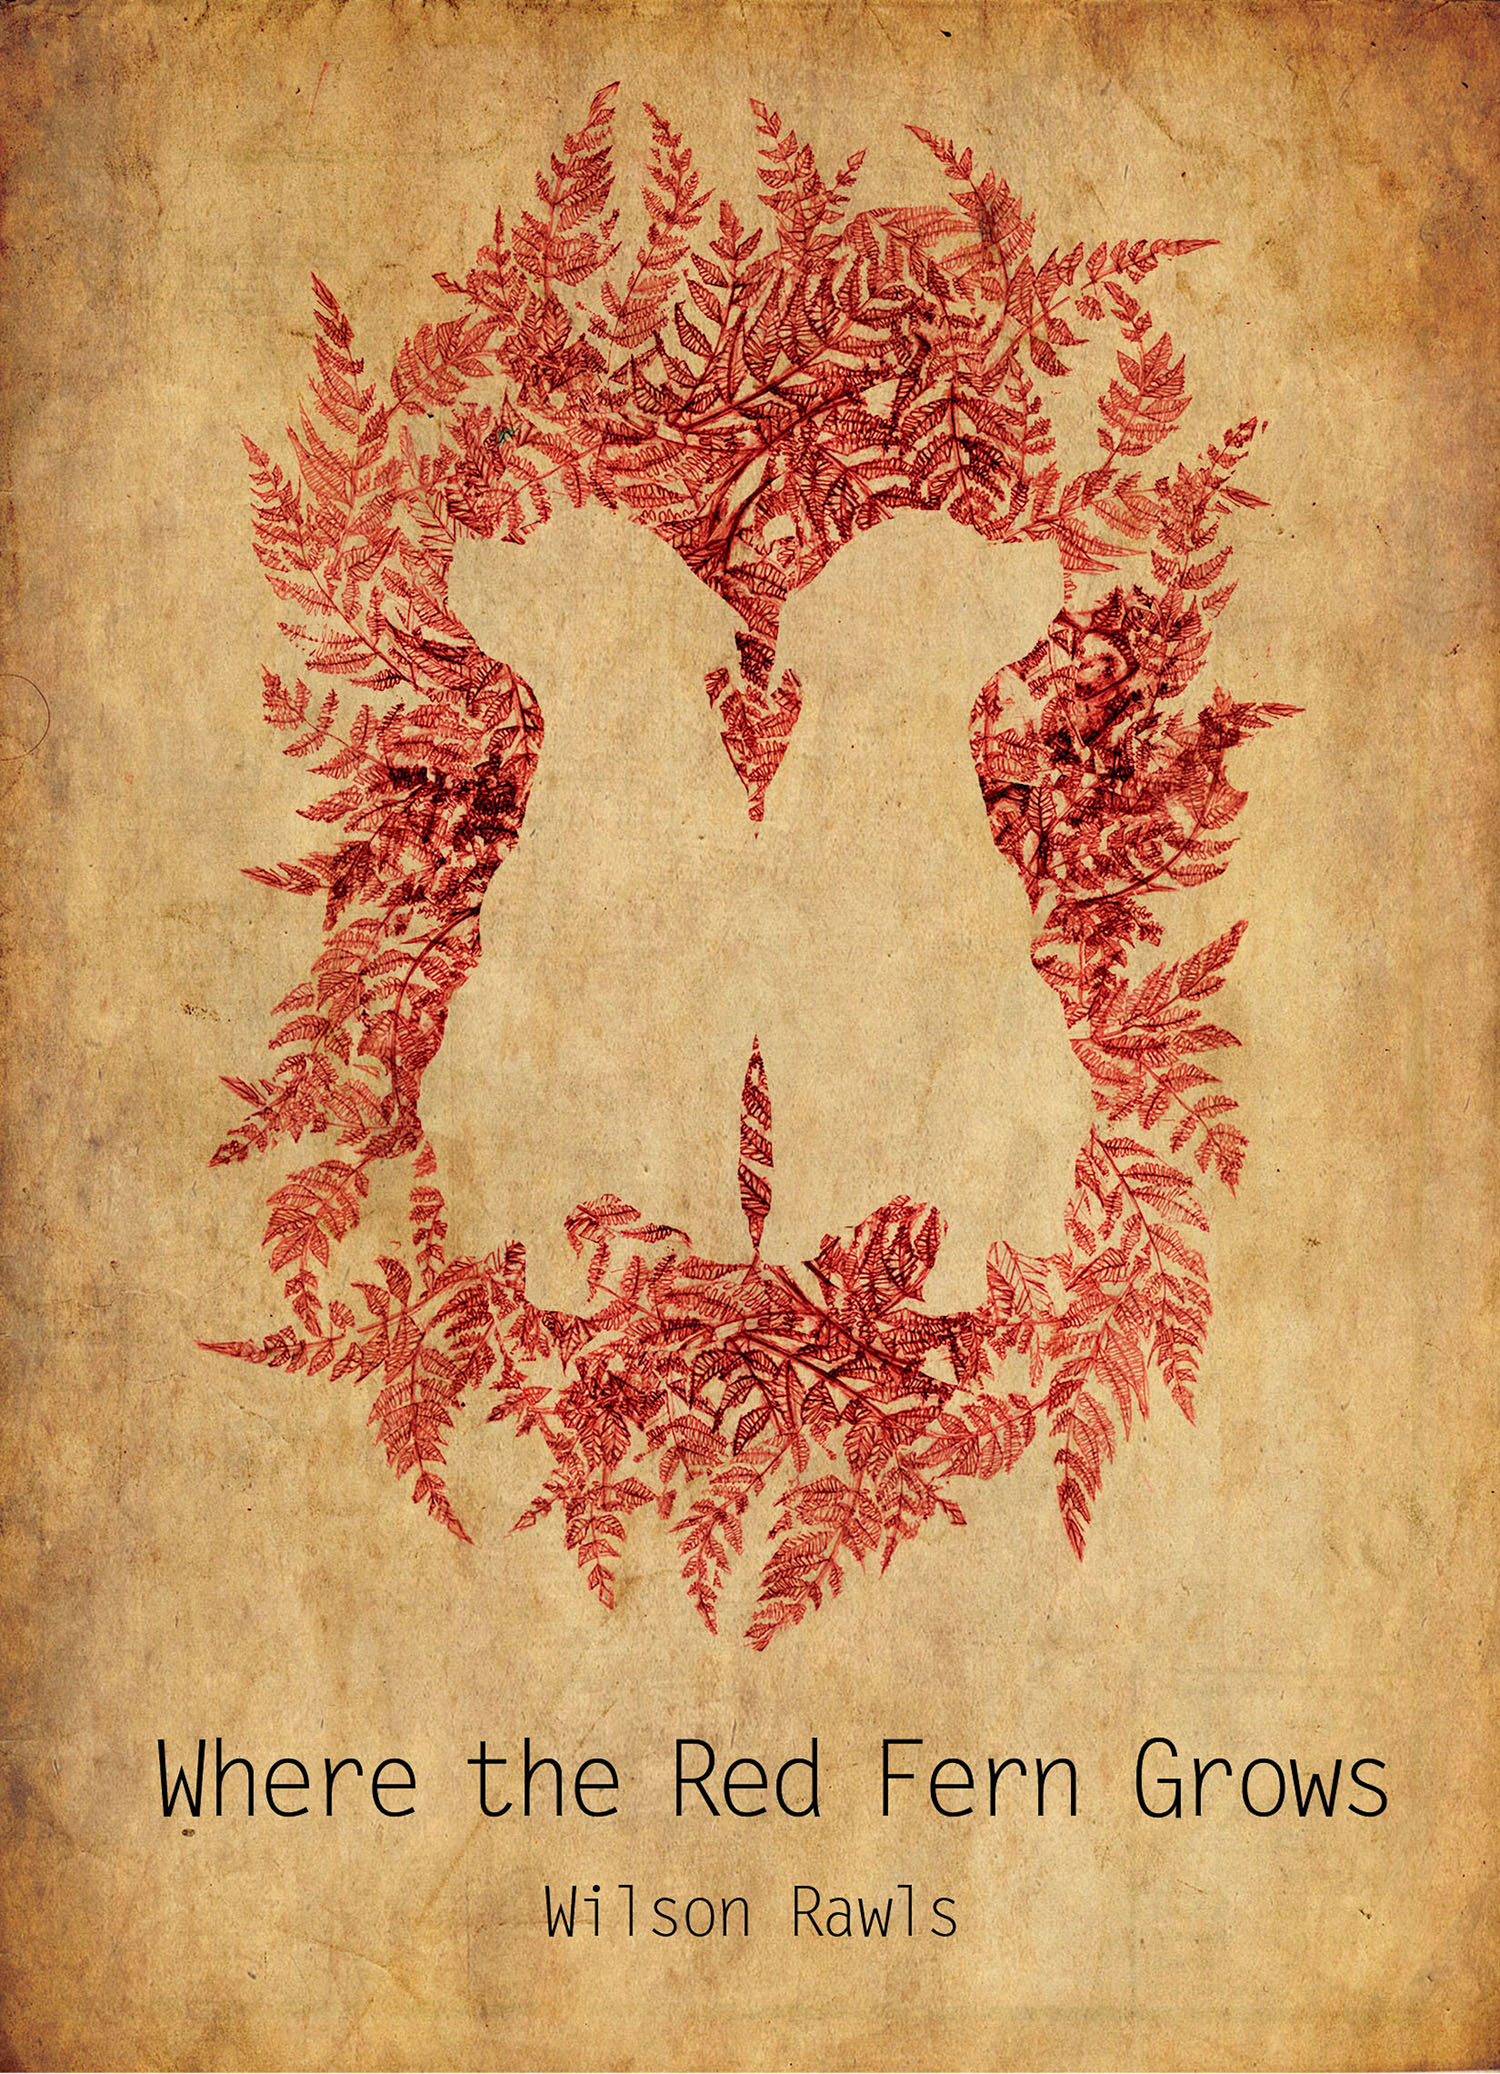 where the read fern grows essay